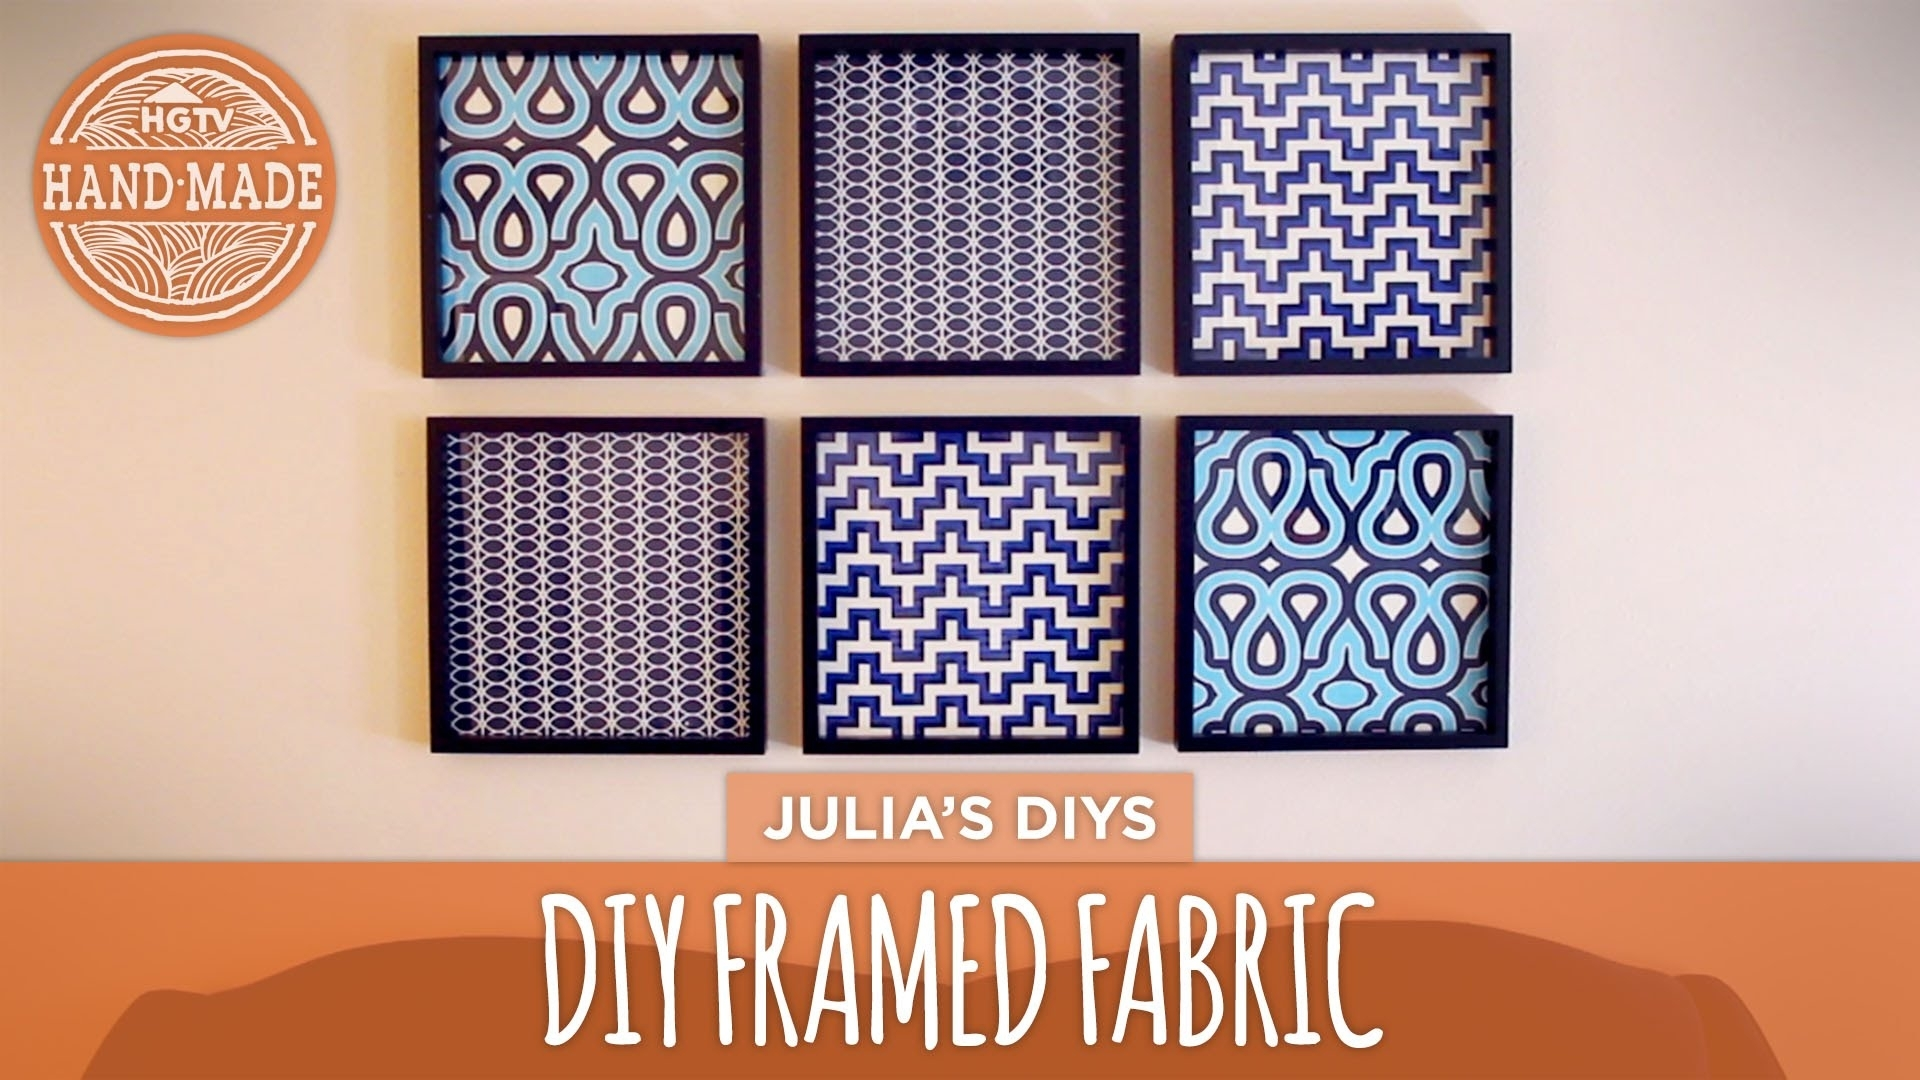 Diy Framed Fabric Gallery Wall – Hgtv Handmade – Youtube For Most Recently Released Fabric Covered Frames Wall Art (View 5 of 15)